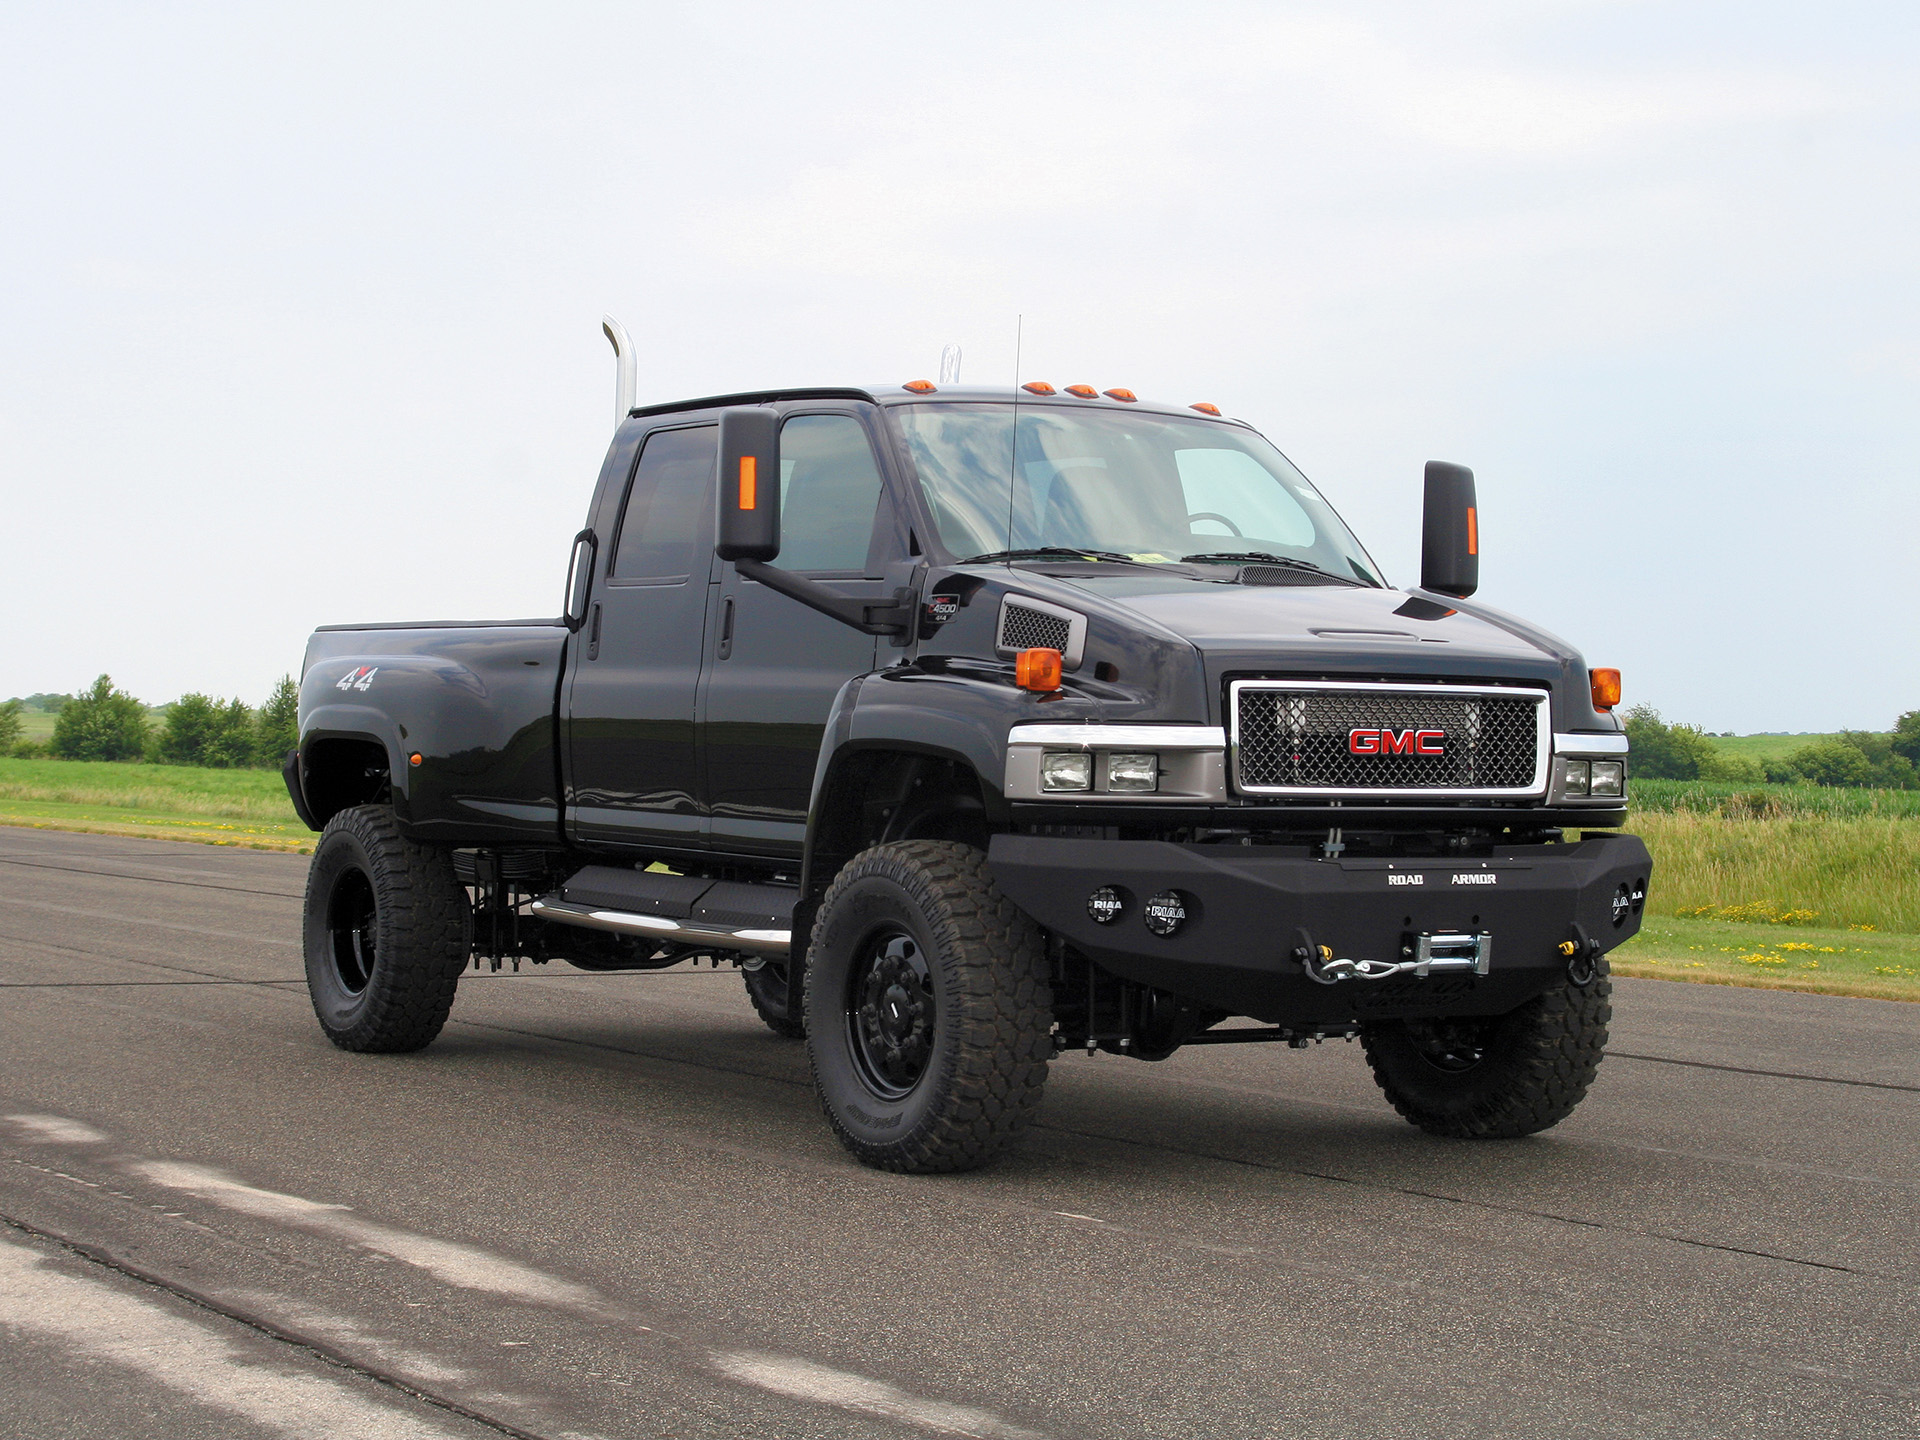 7995 How Fold Down Your Rear Crew Cab Seats further ment 2602 together with What If Gm Brought The Malibu Turbo Performance Concept To Life together with 2006 Ford F 150 Pictures C3720 moreover Index5. on 2009 gmc sierra mod